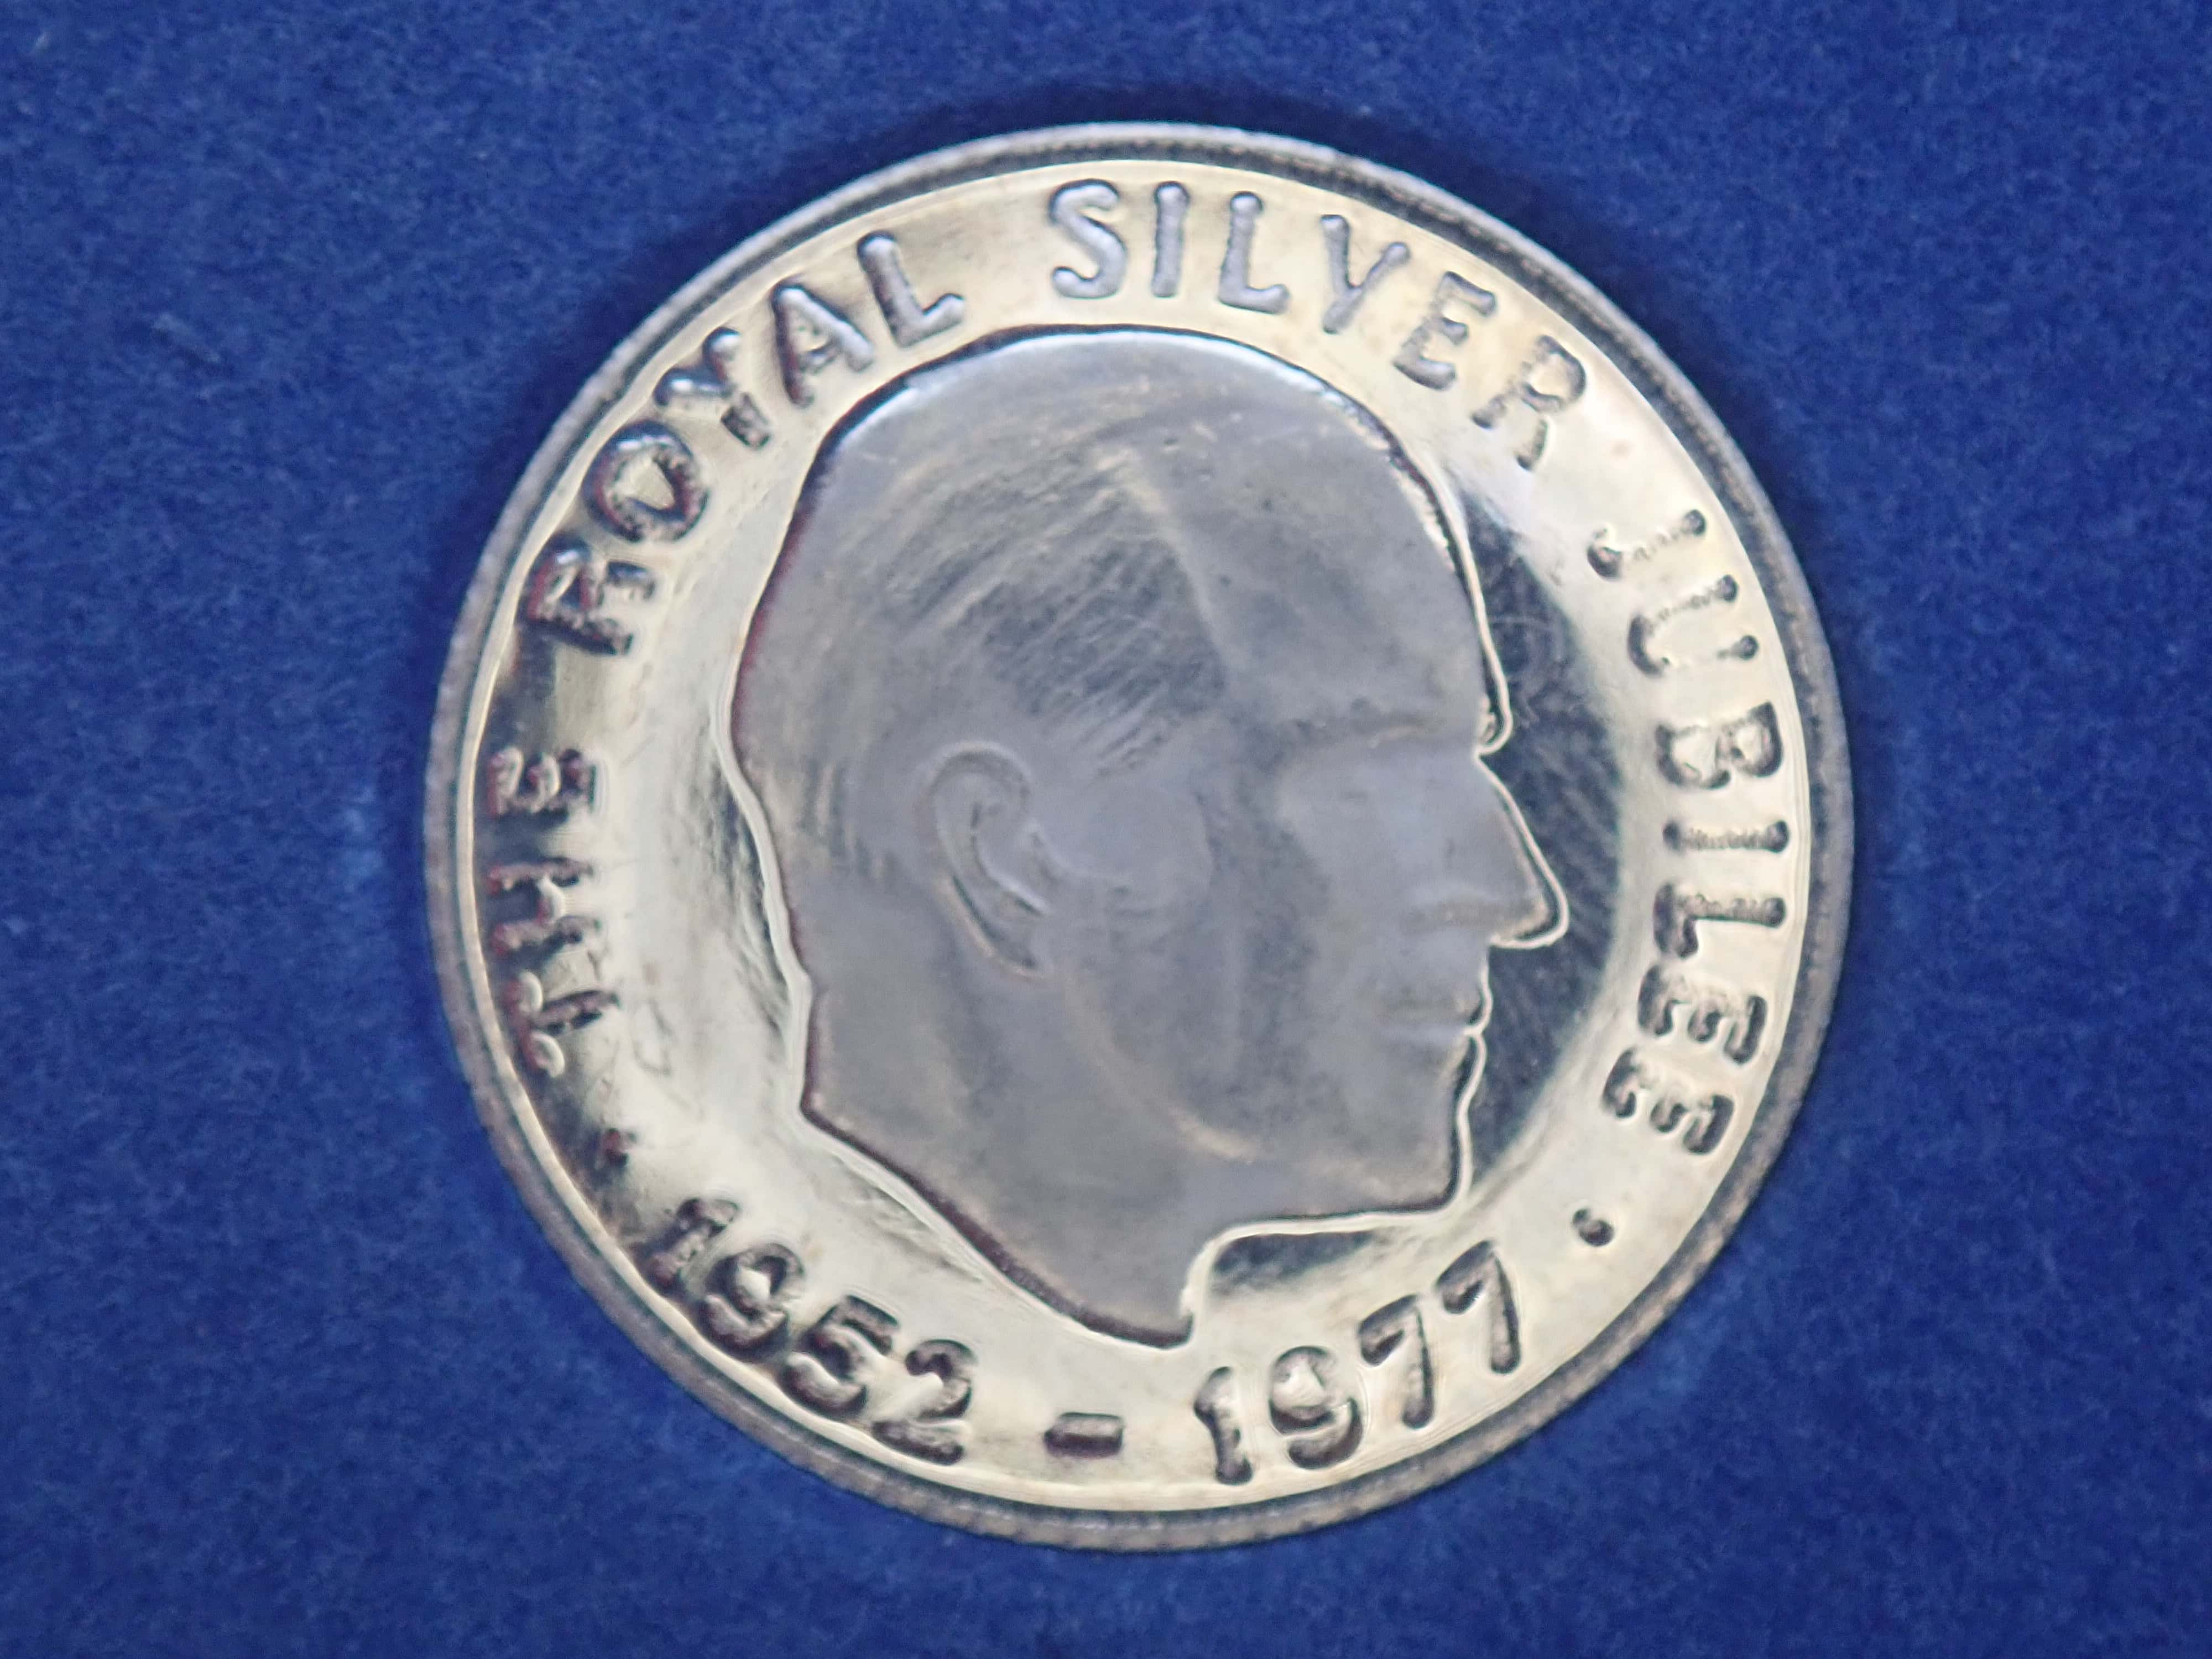 AZZ00807 - Gold 9ct Silver Jubilee Commemorative Medal 2.5gms, Prince Philip Box & Cert. Number 3213